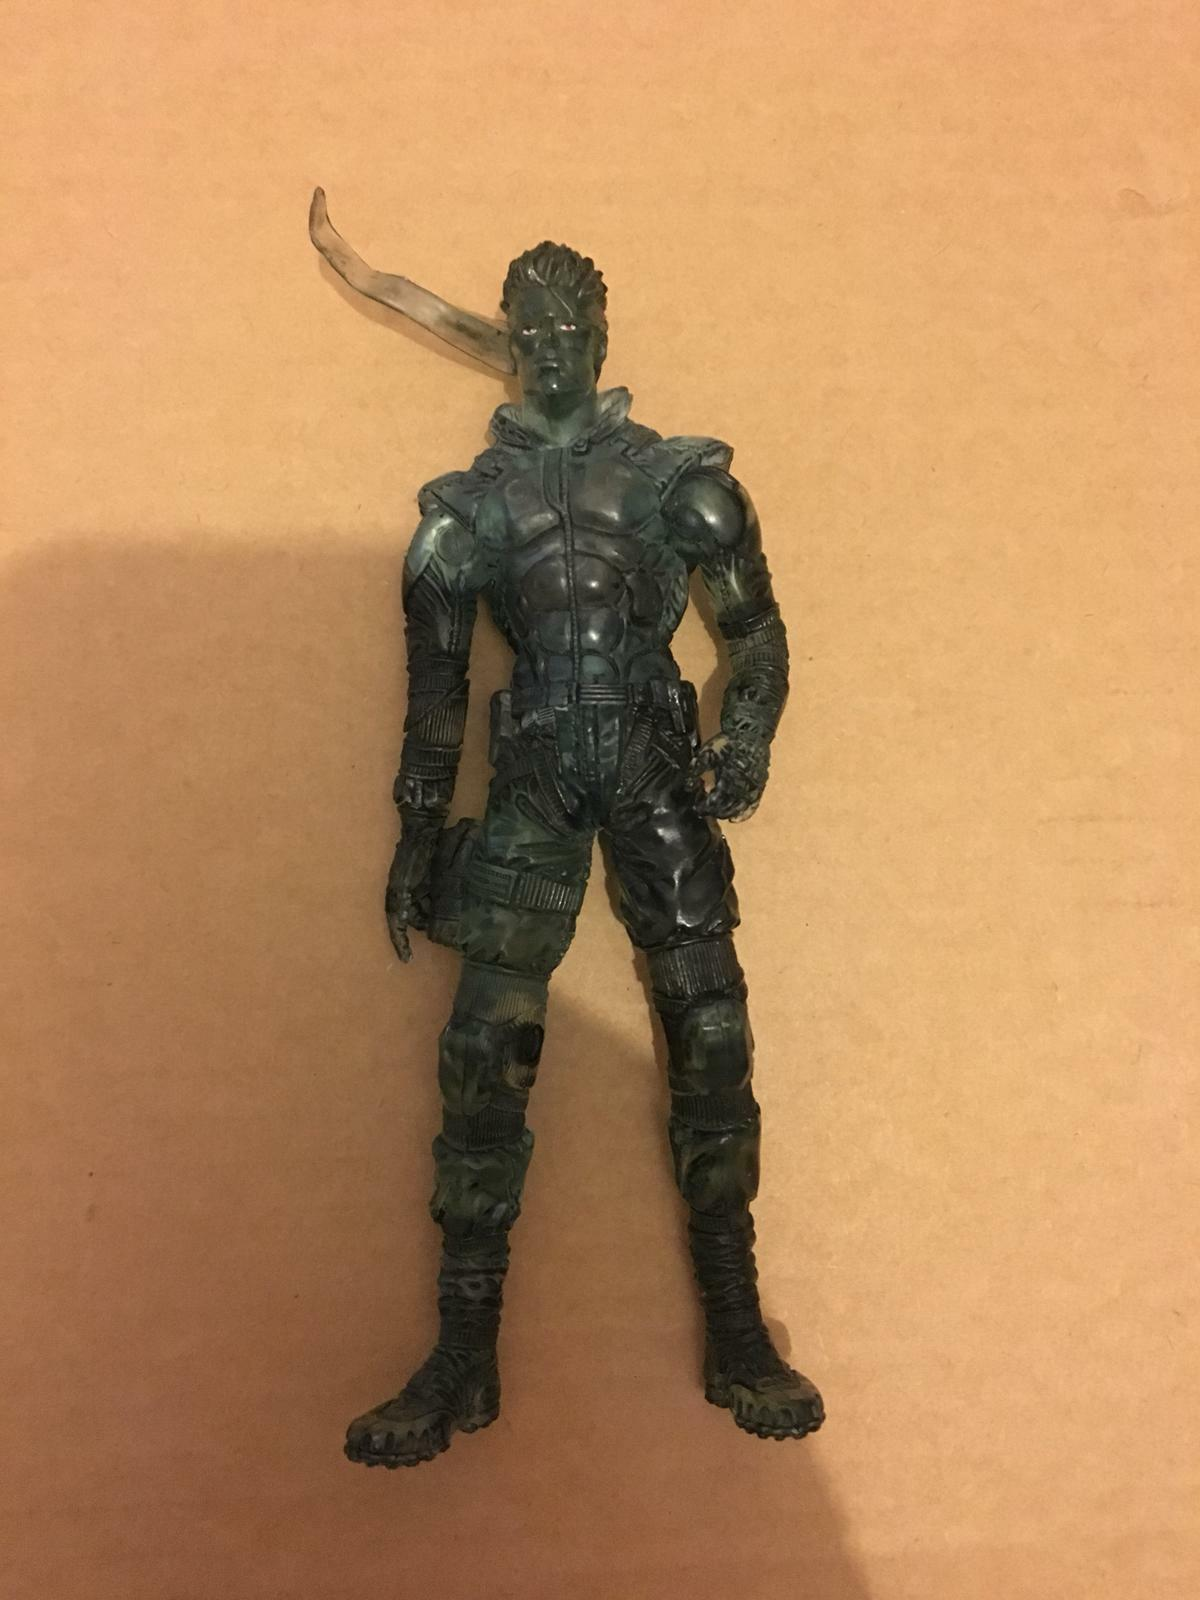 Metal Gear Gear Gear Solid Action Figure McFarlane Toys 14 bcb9e6